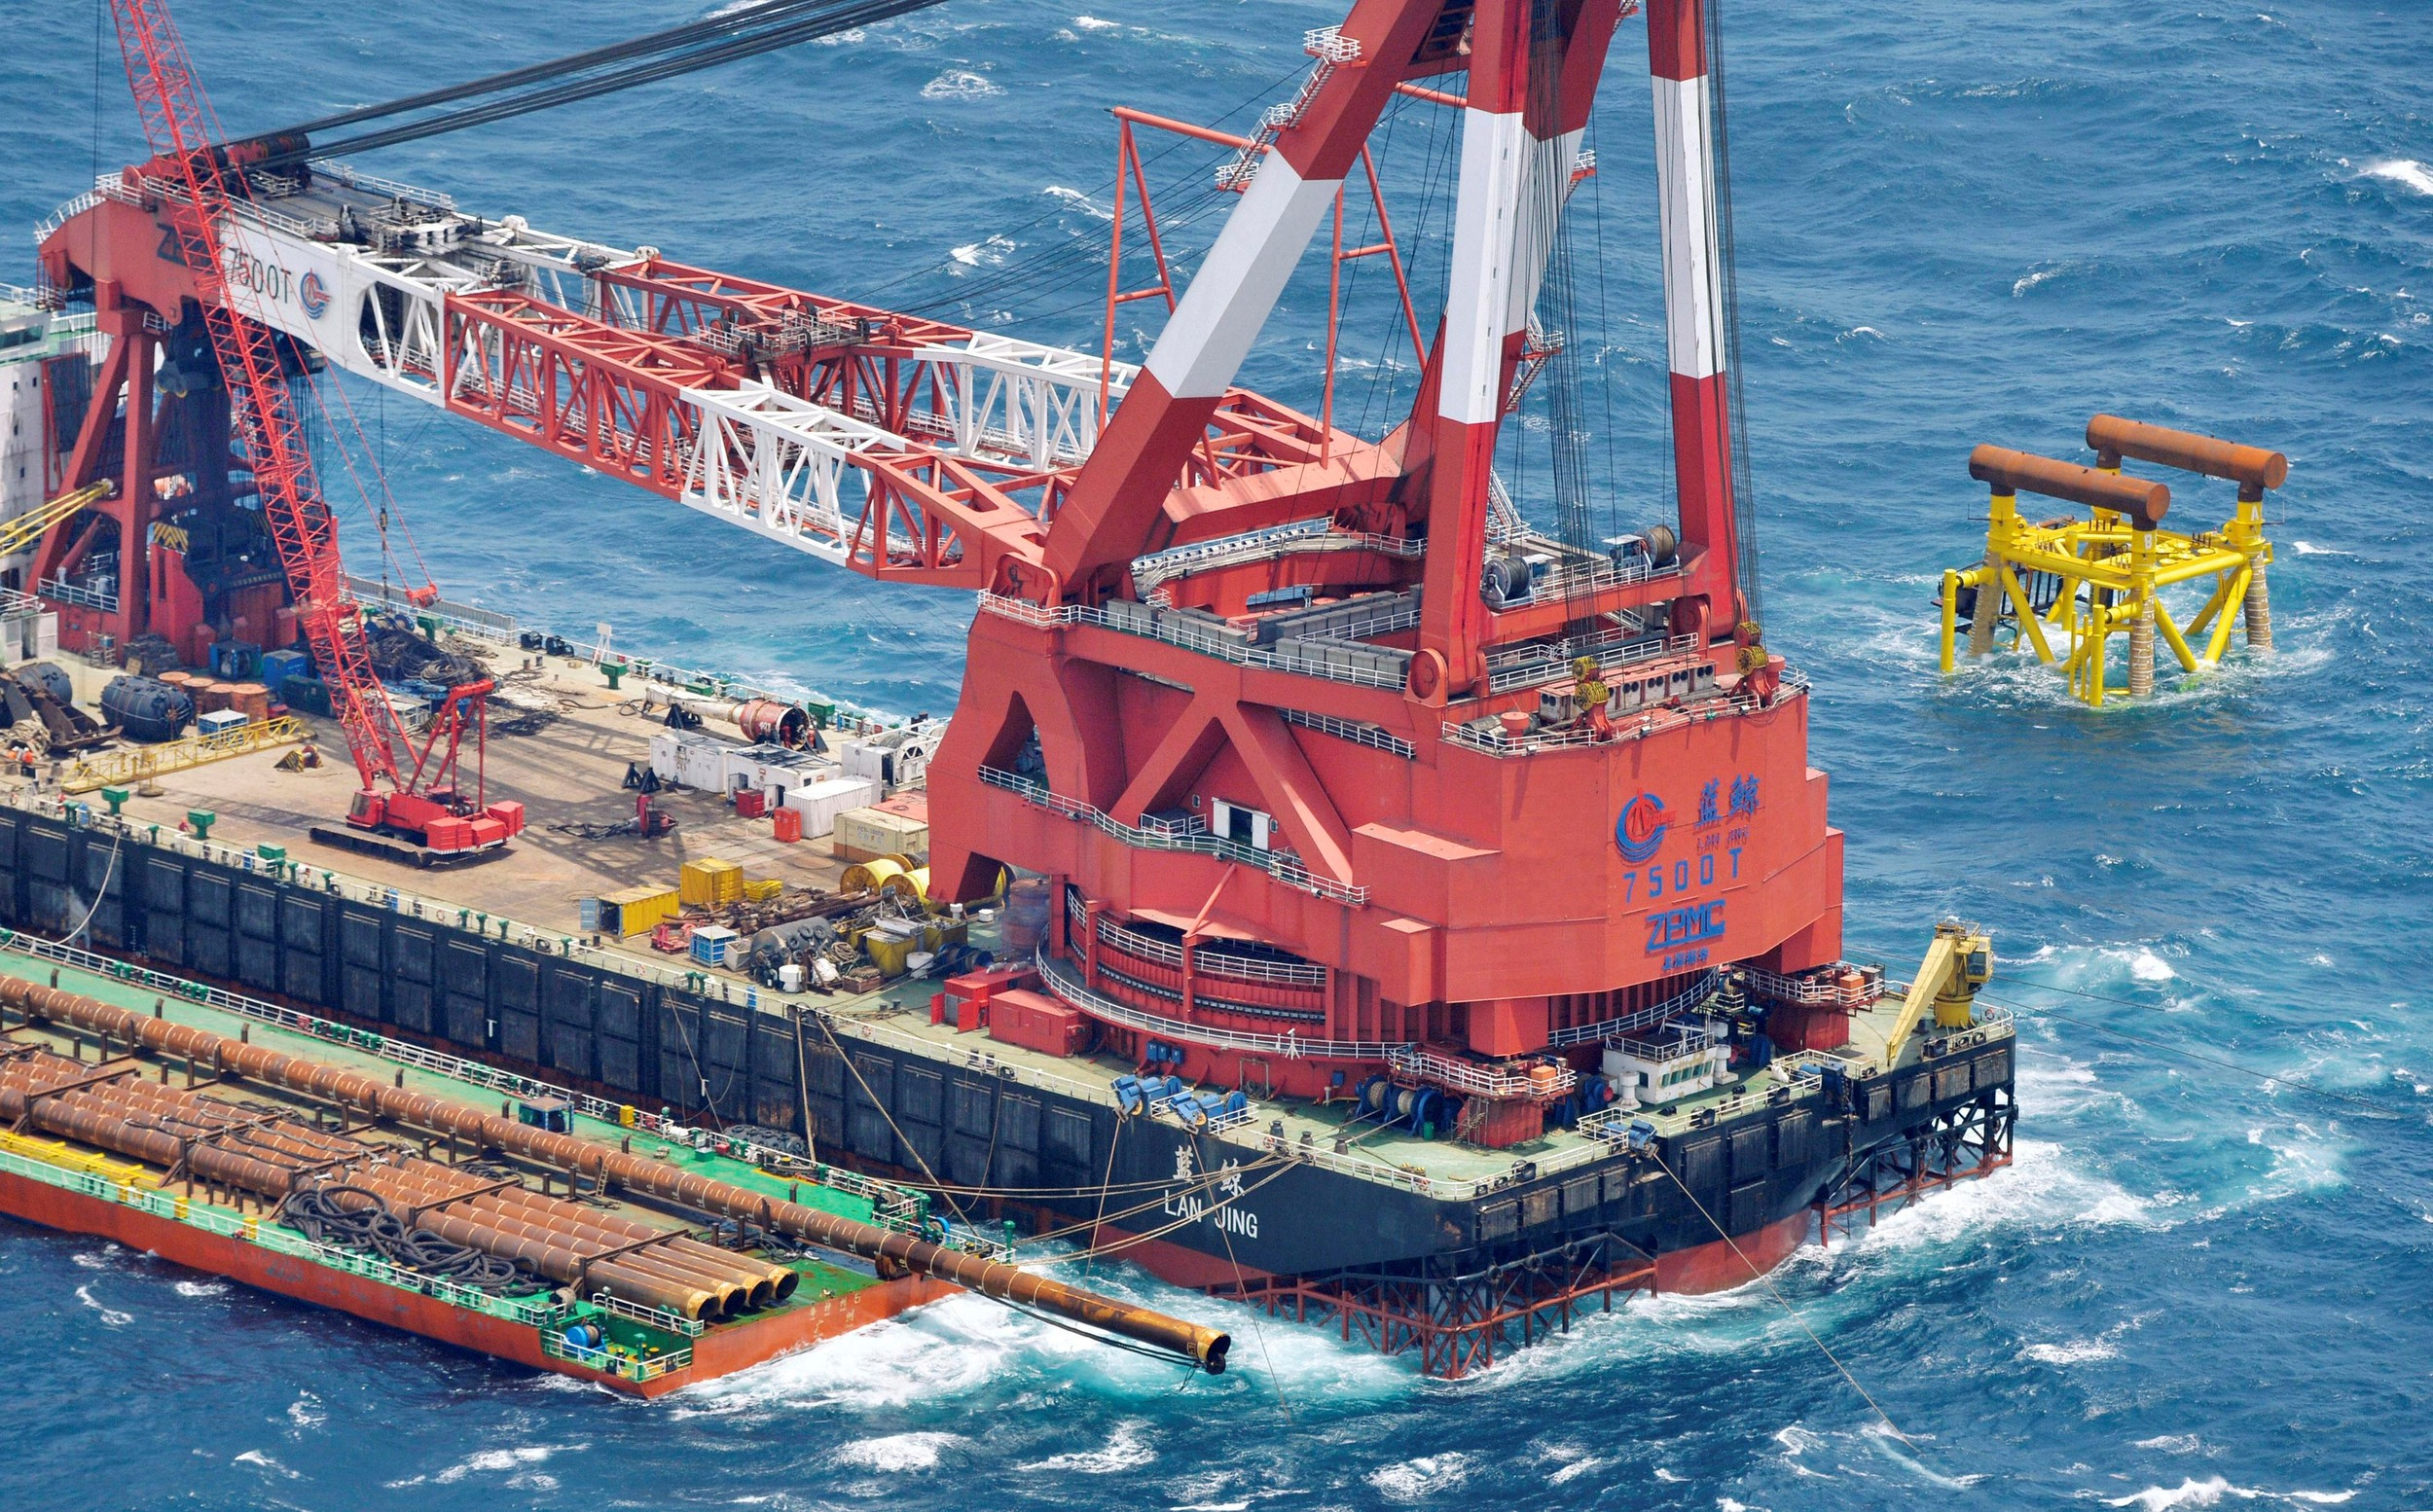 A Chinese rig meant for natural gas exploration, near the median line between Japan and China in the East China Sea, shown in an aerial picture taken July 5, 2013.